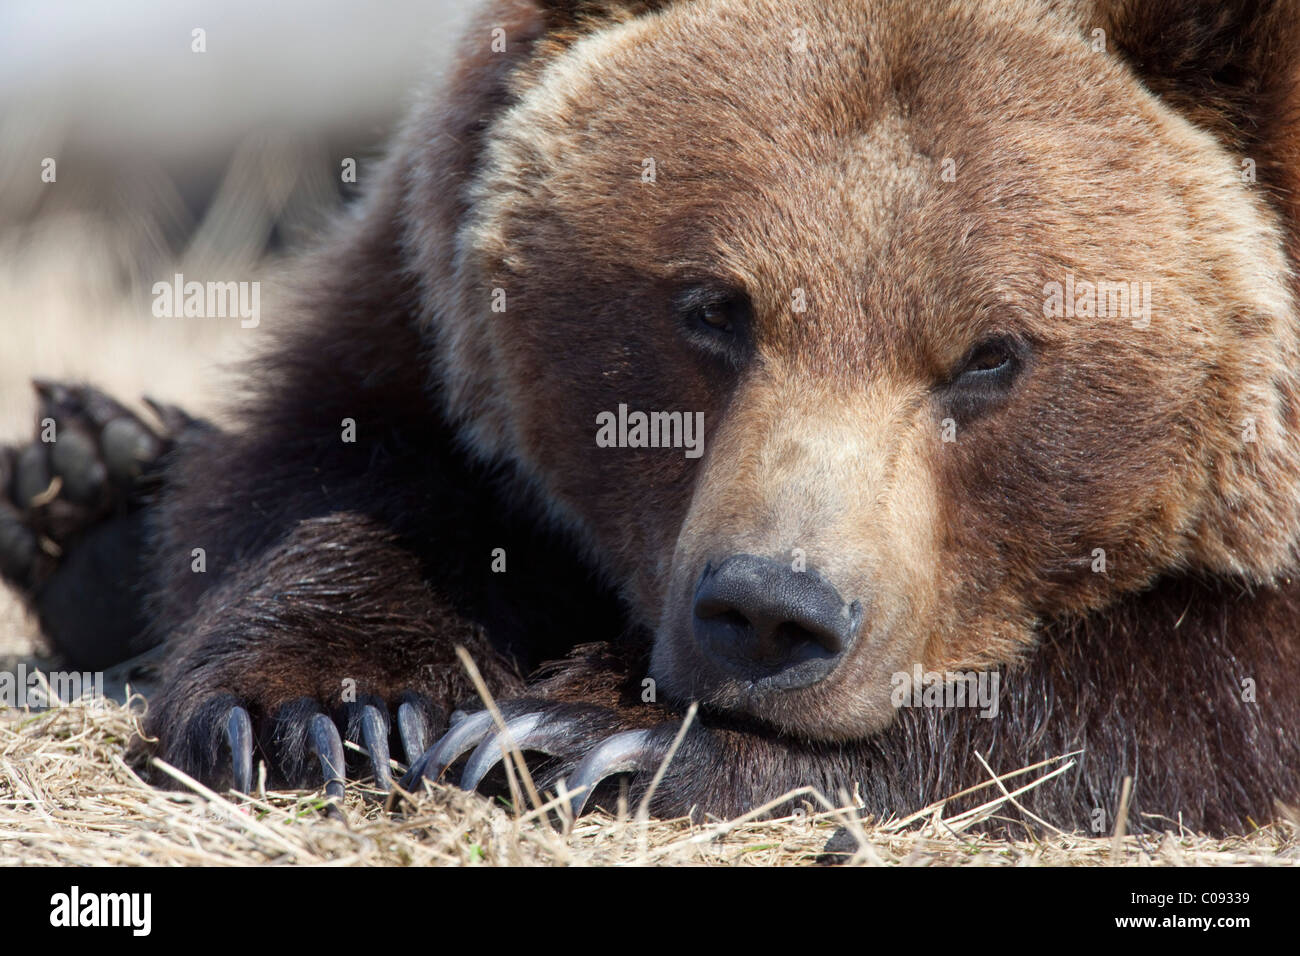 Close up portait of a sleepy adult Brown bear at the Alaska Wildlife Conservation Center near Portage, CAPTIVE - Stock Image